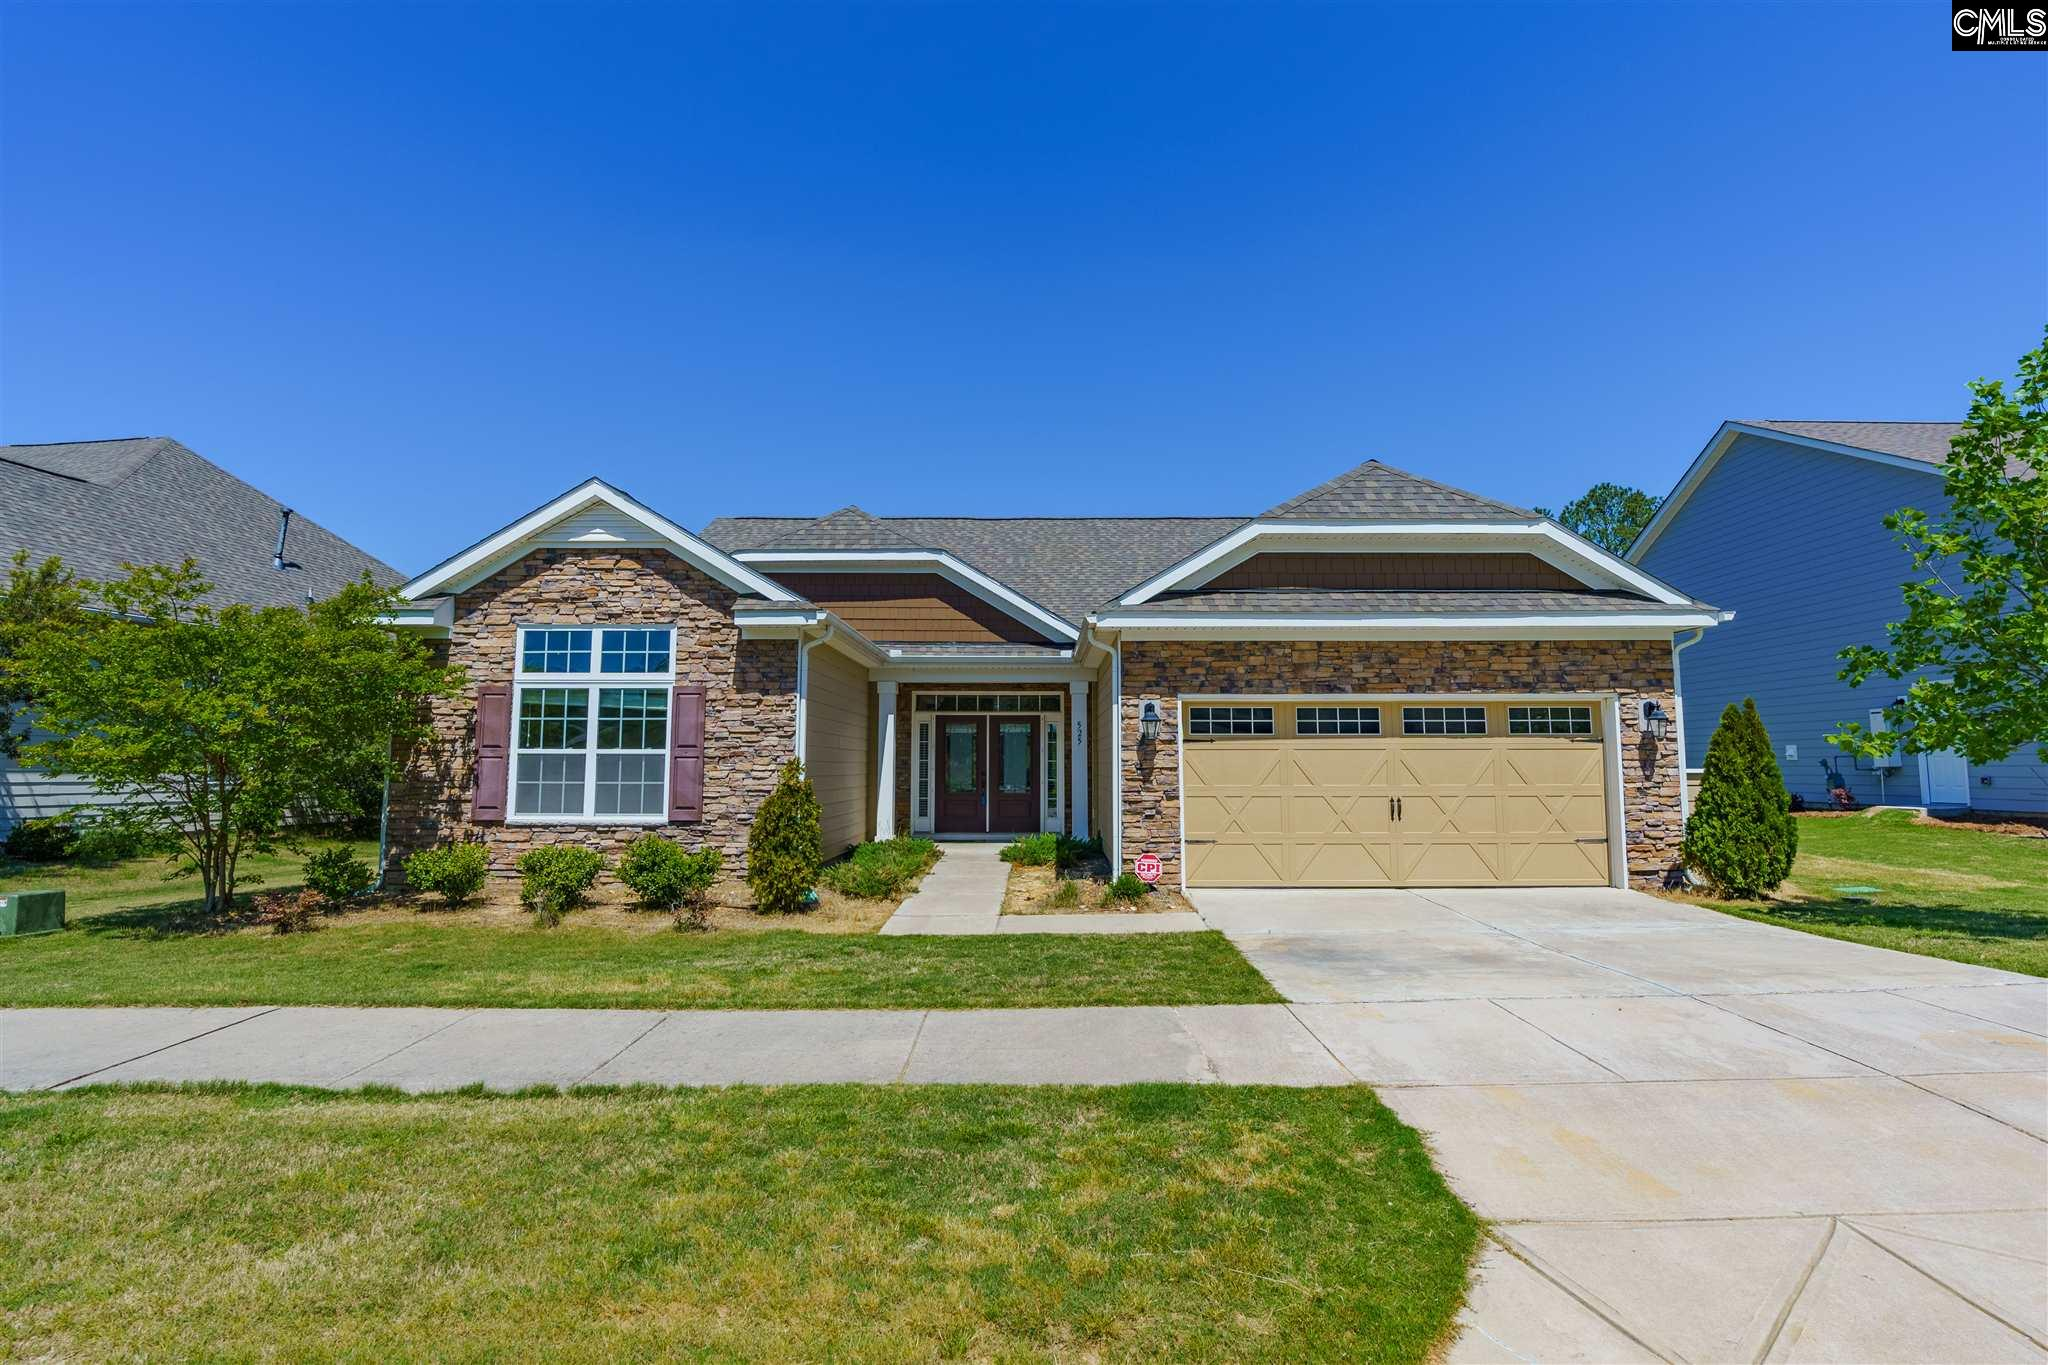 525 Golden Rod Blythewood, SC 29016